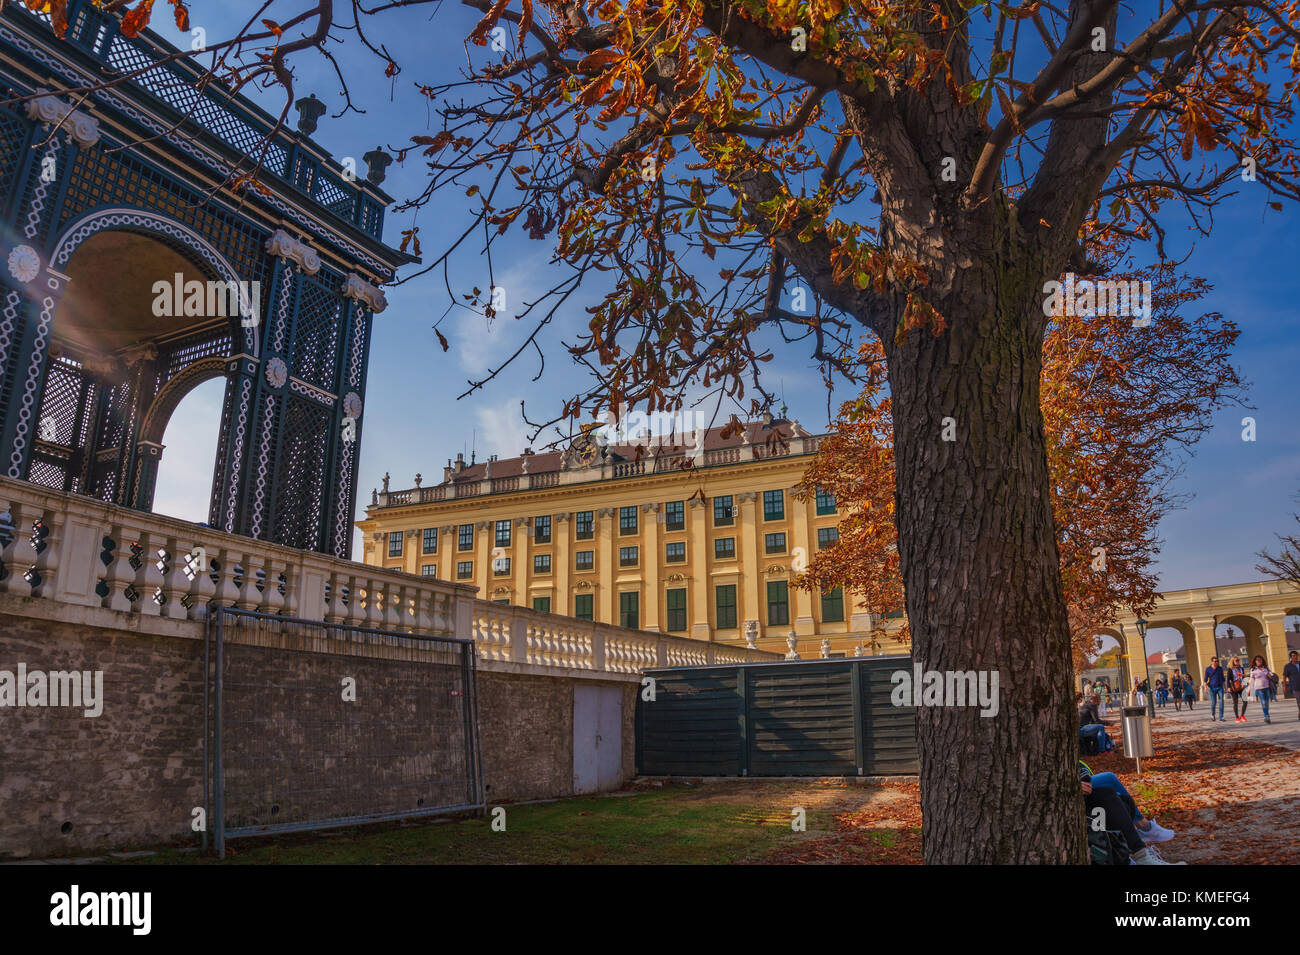 Surrounded area and gardens around the famous Schonbrunn Palace Vienna in Austria, Europe. - Stock Image